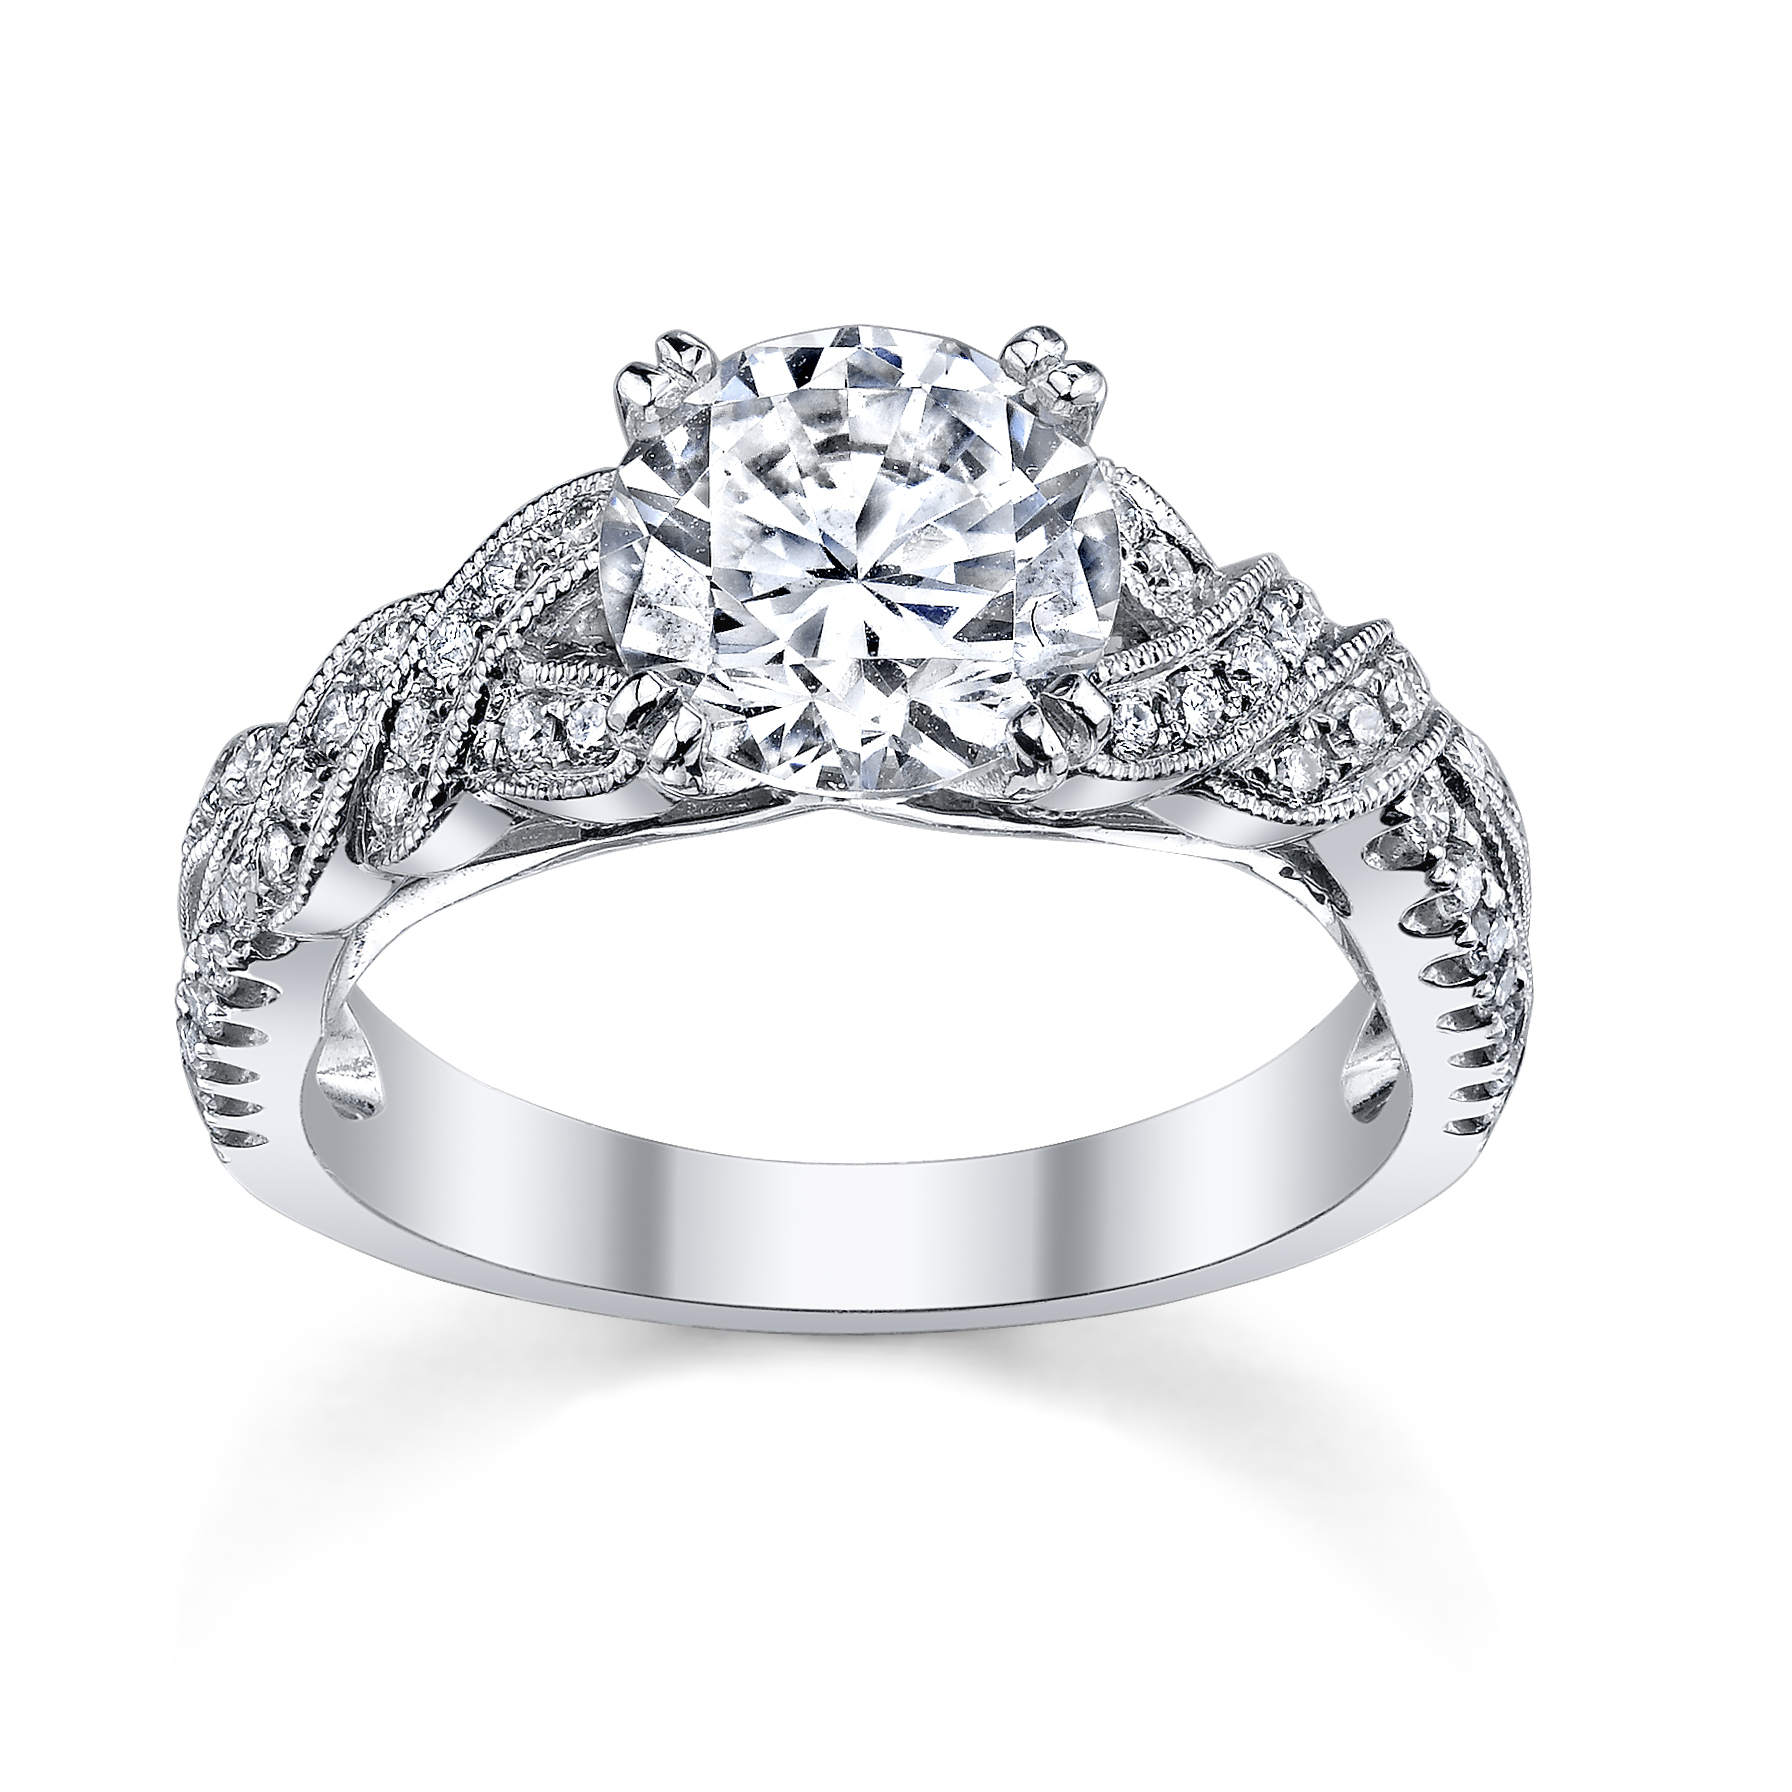 5 Engagement Rings Your Girlfriends Will Envy